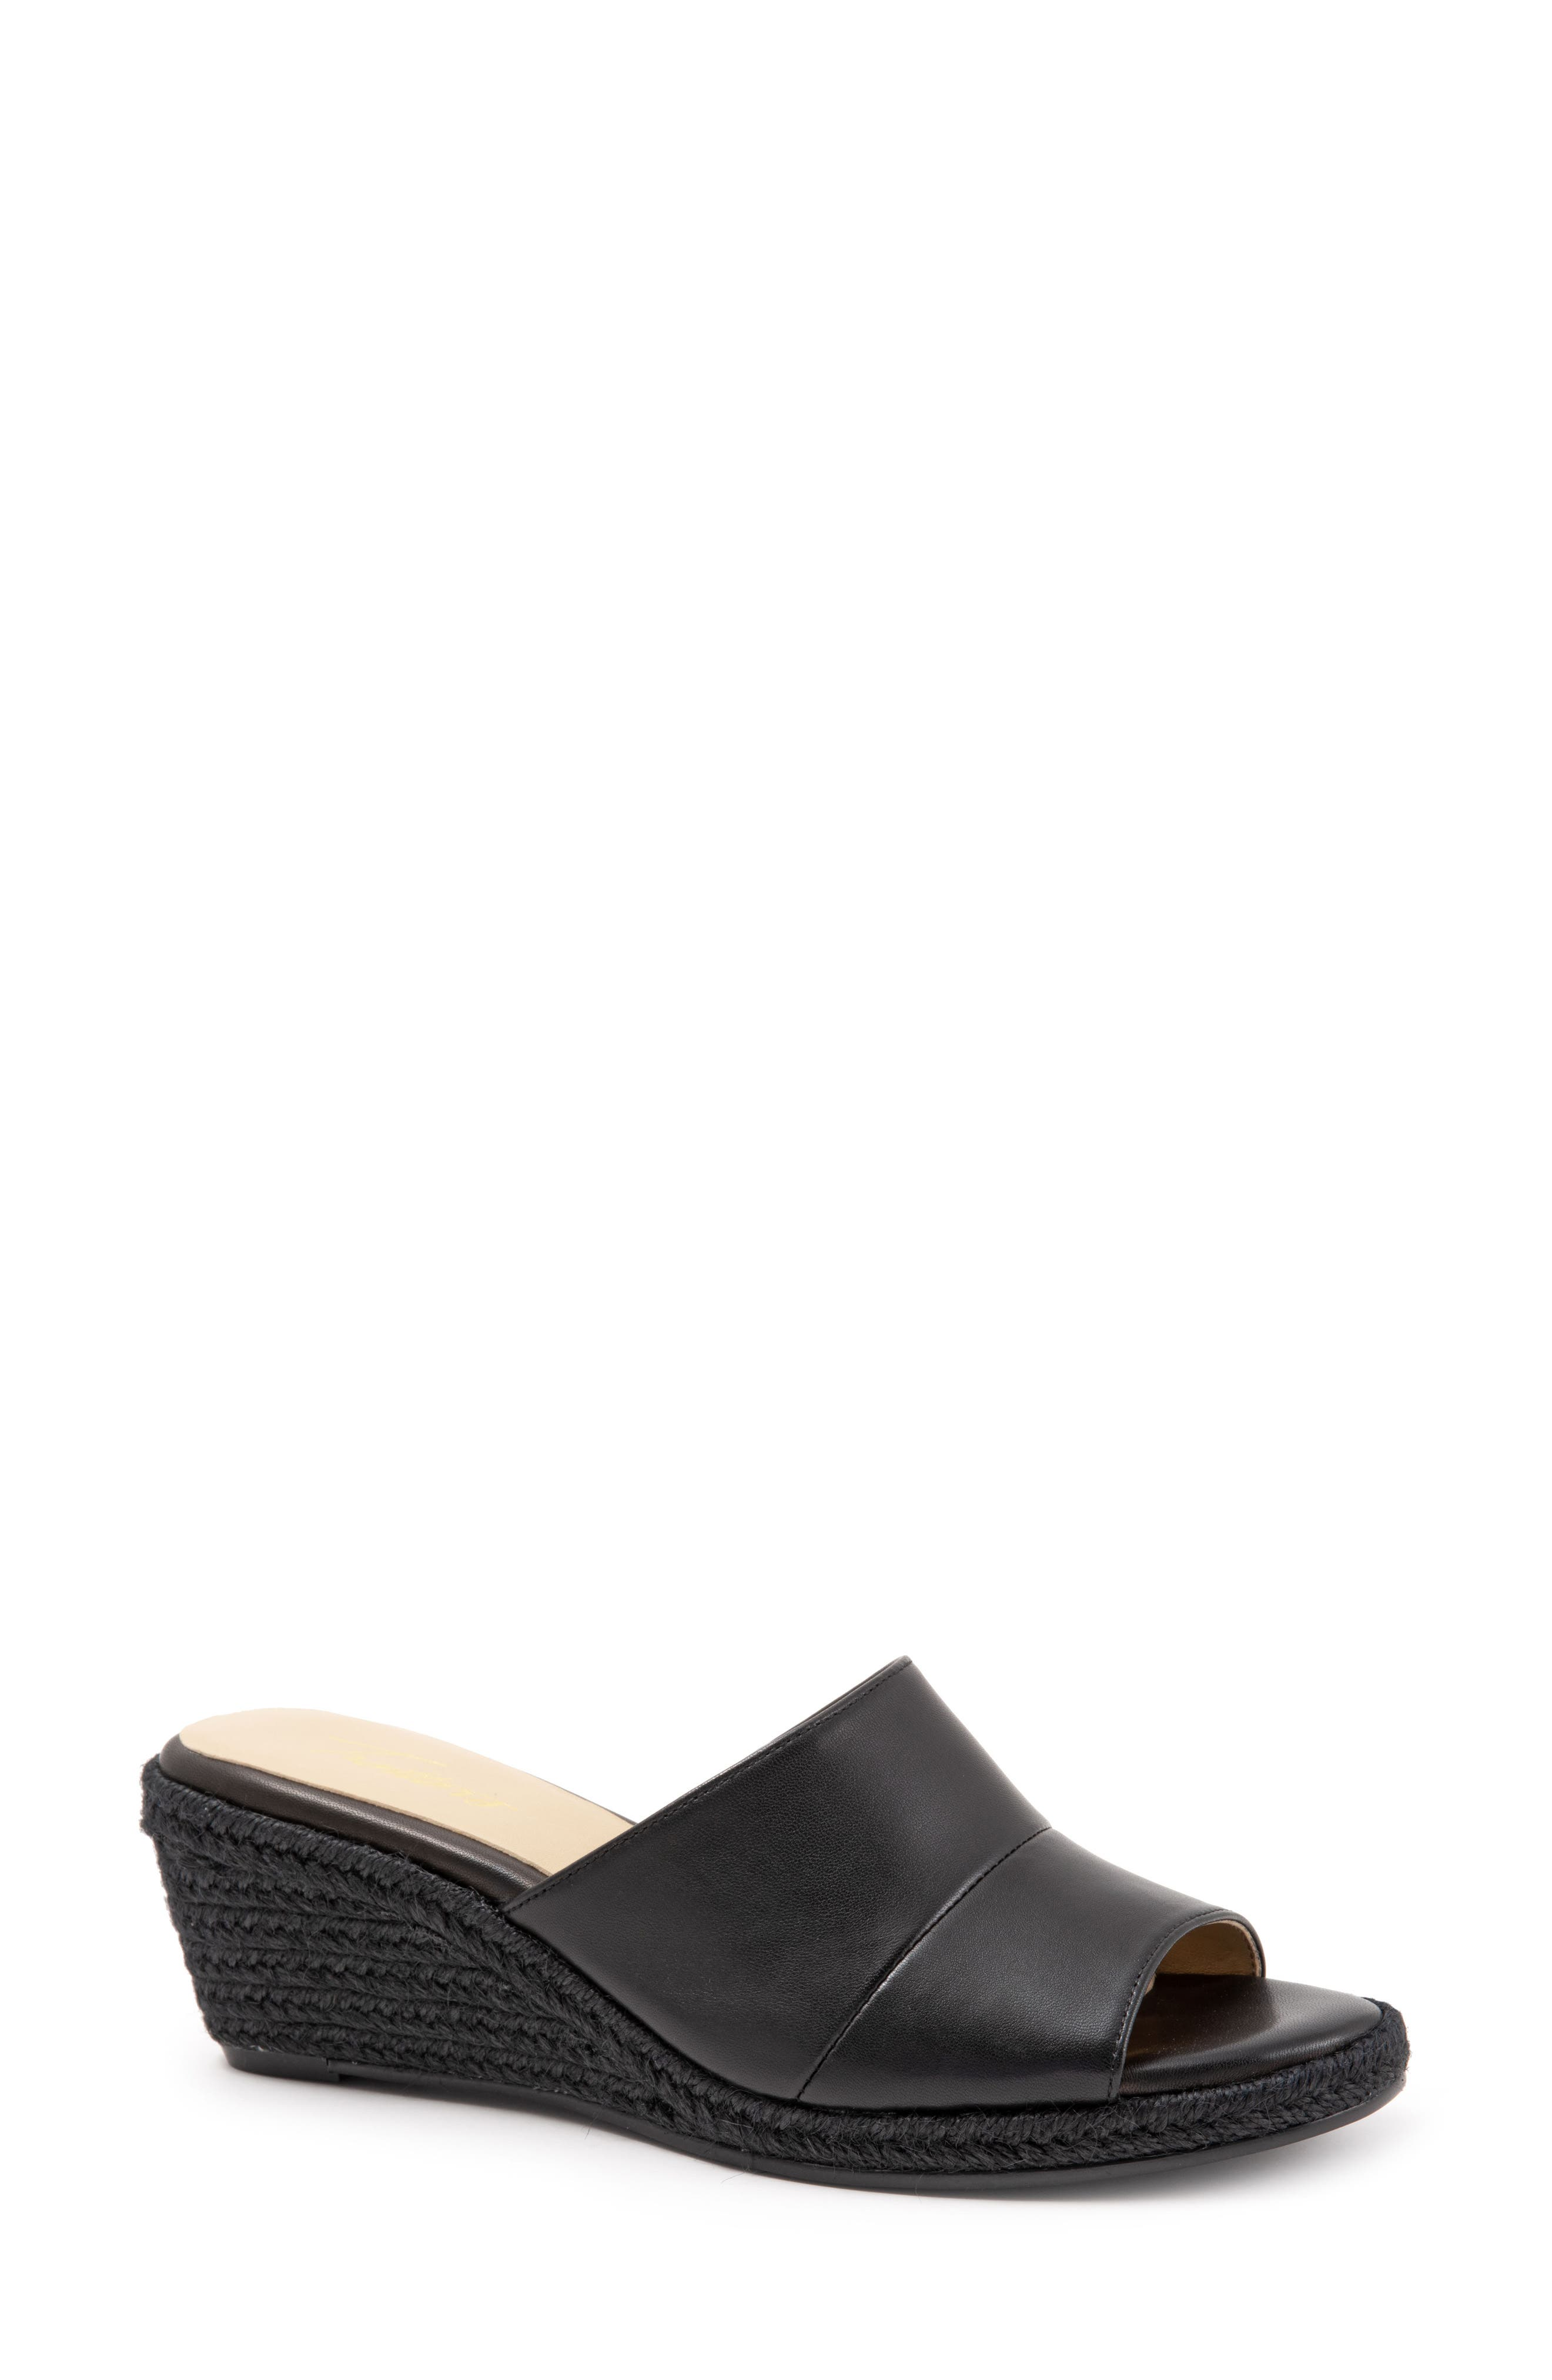 TROTTERS Colony Wedge Slide Sandal, Main, color, BLACK LEATHER